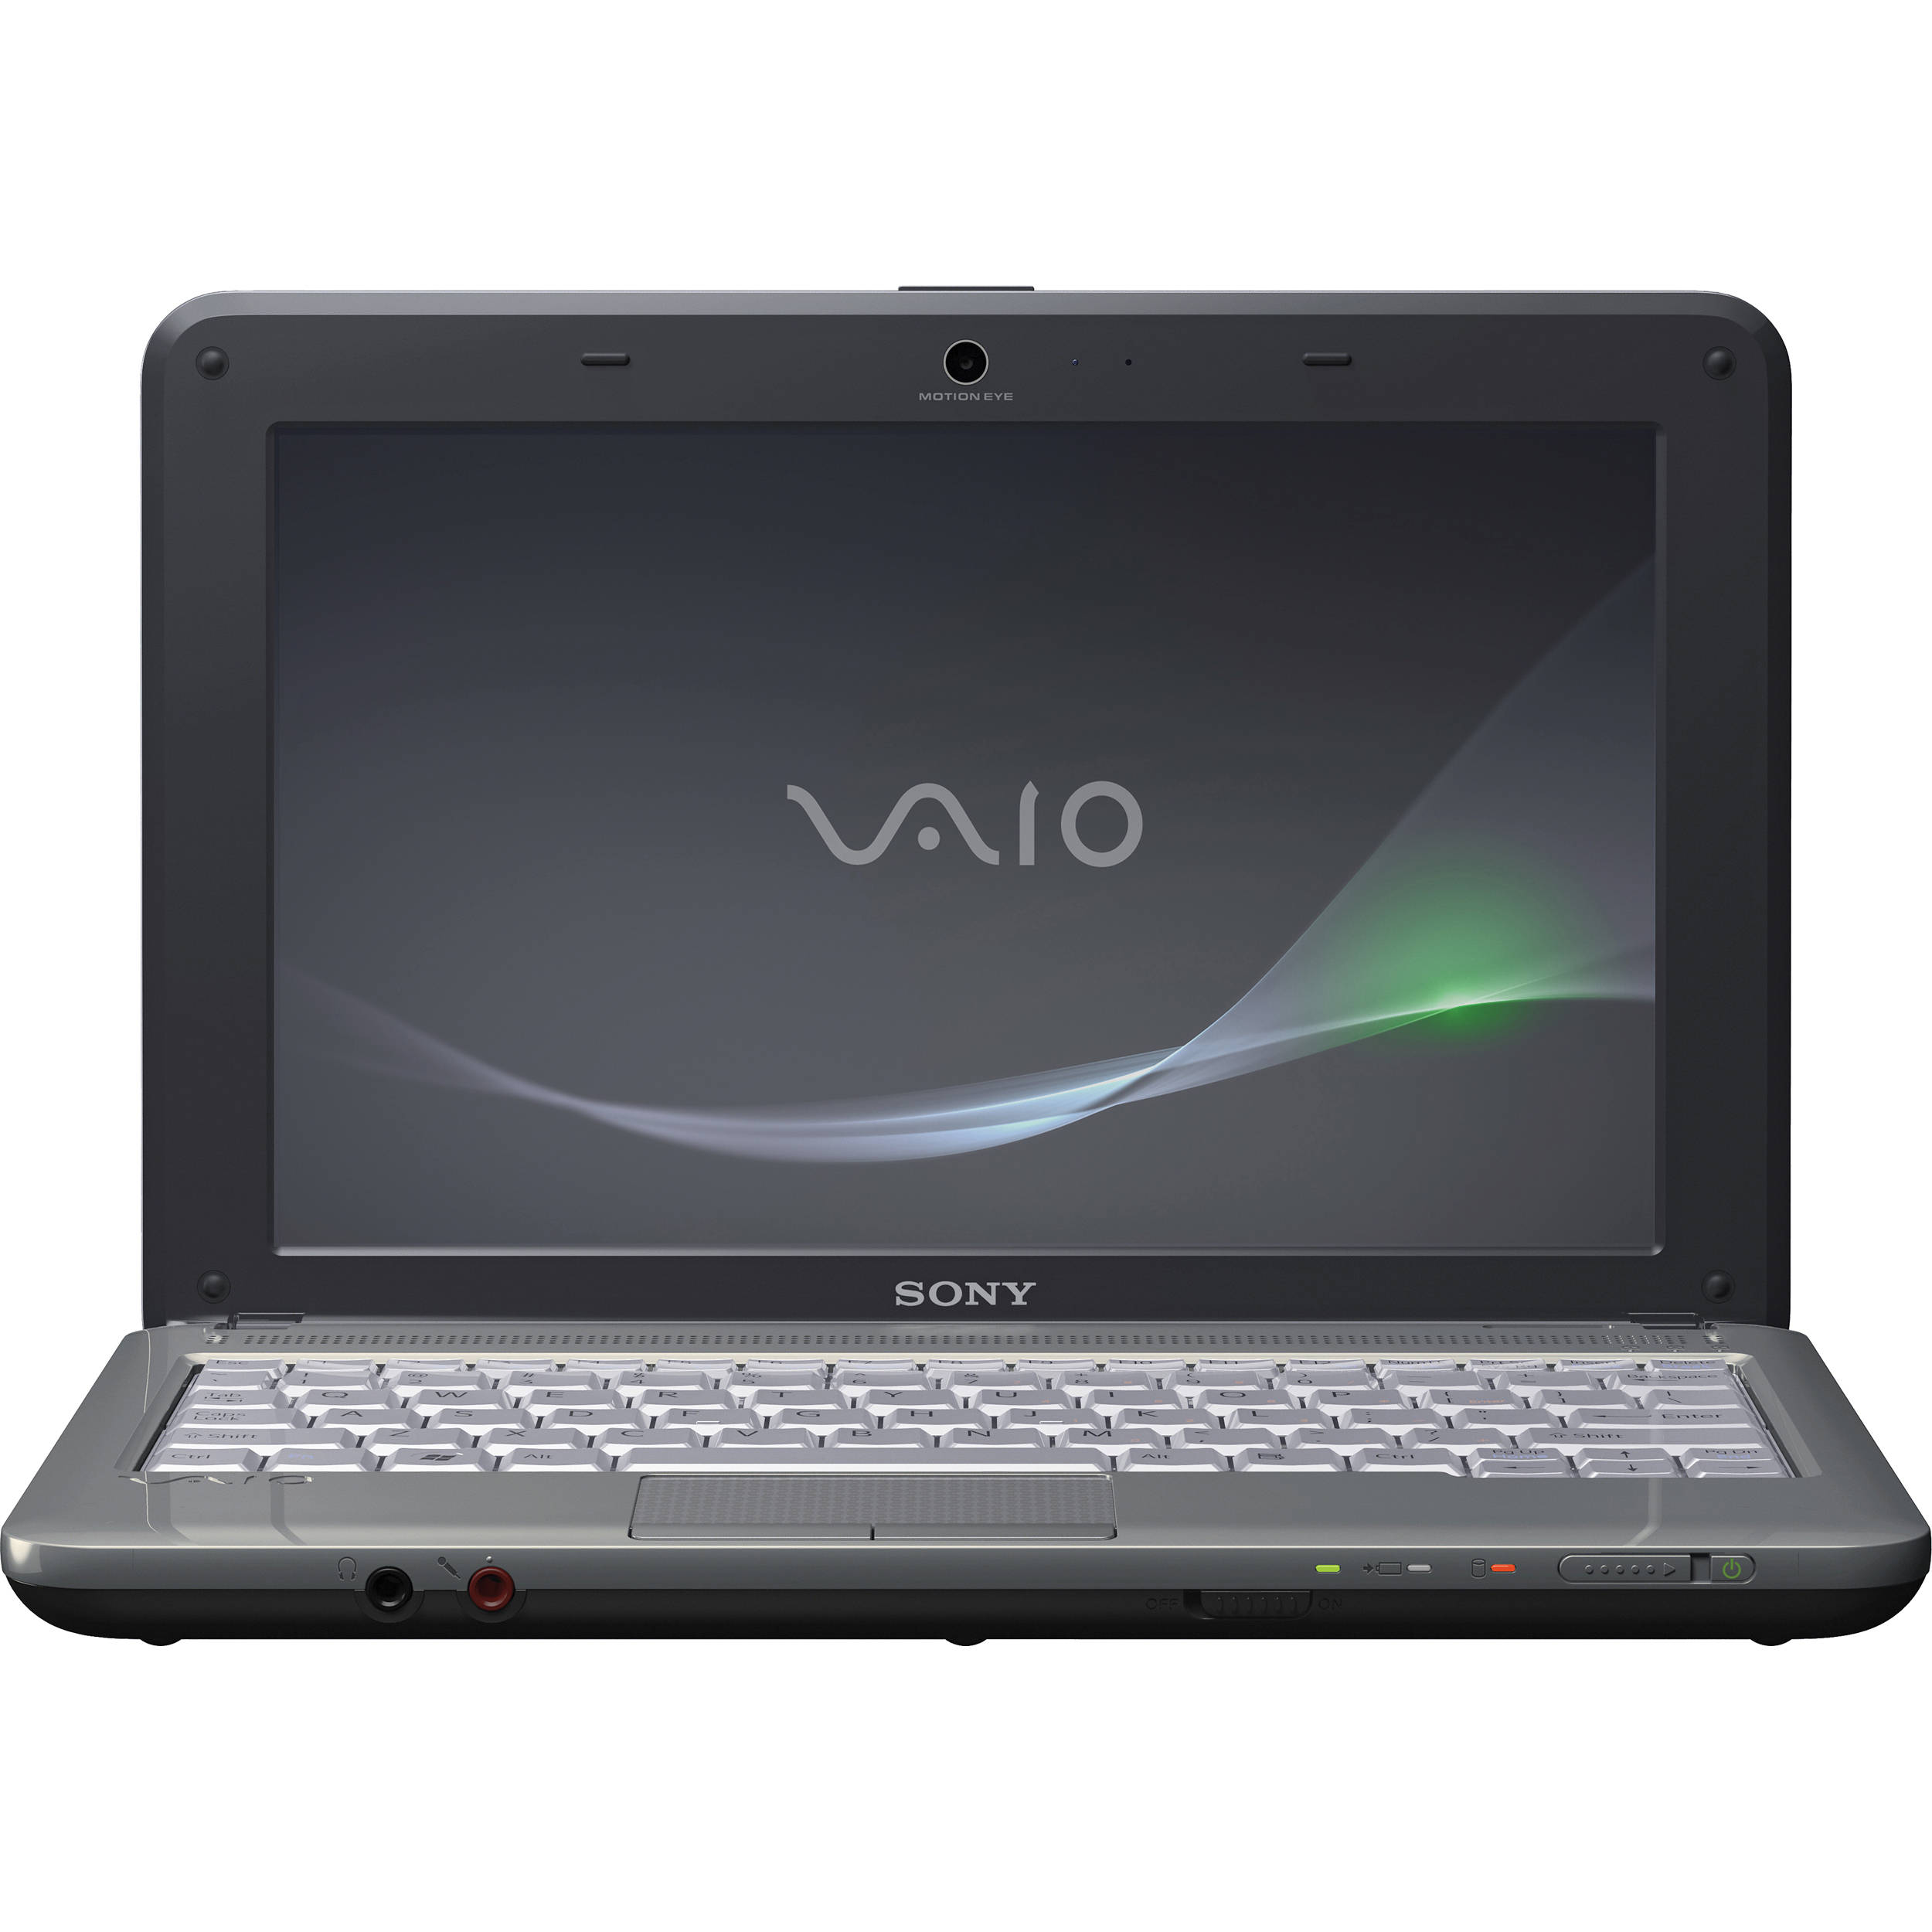 Sony Vaio VPCM121AX/L Windows 8 X64 Treiber